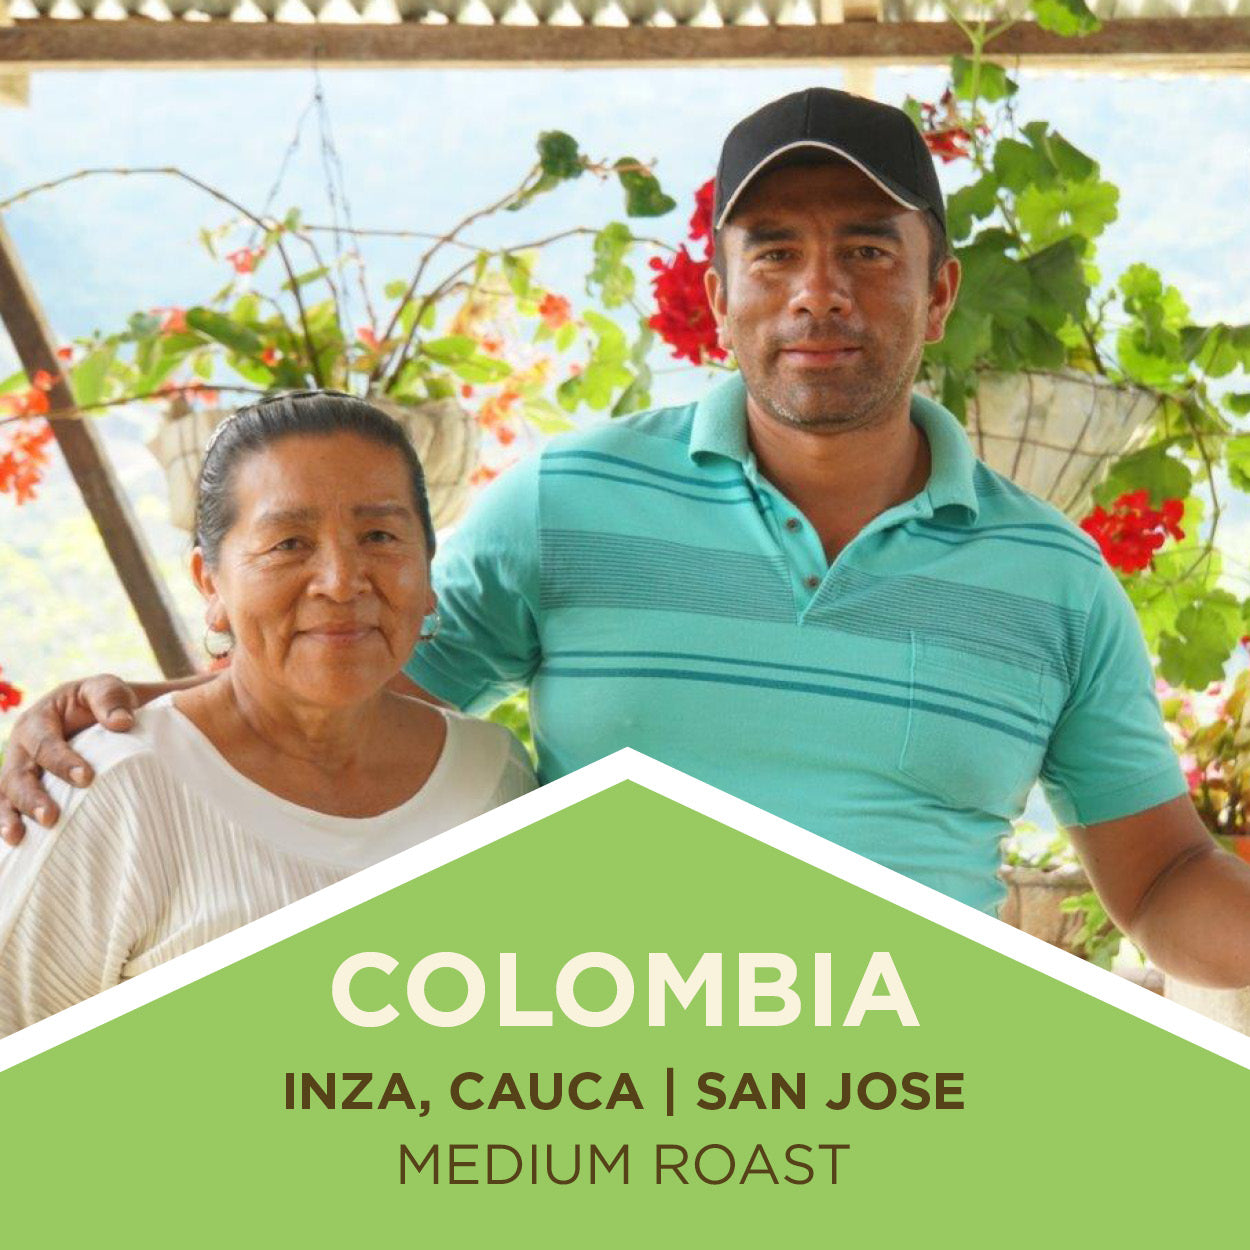 Colombia | Inza, Cauca | San Jose | Medium Roast